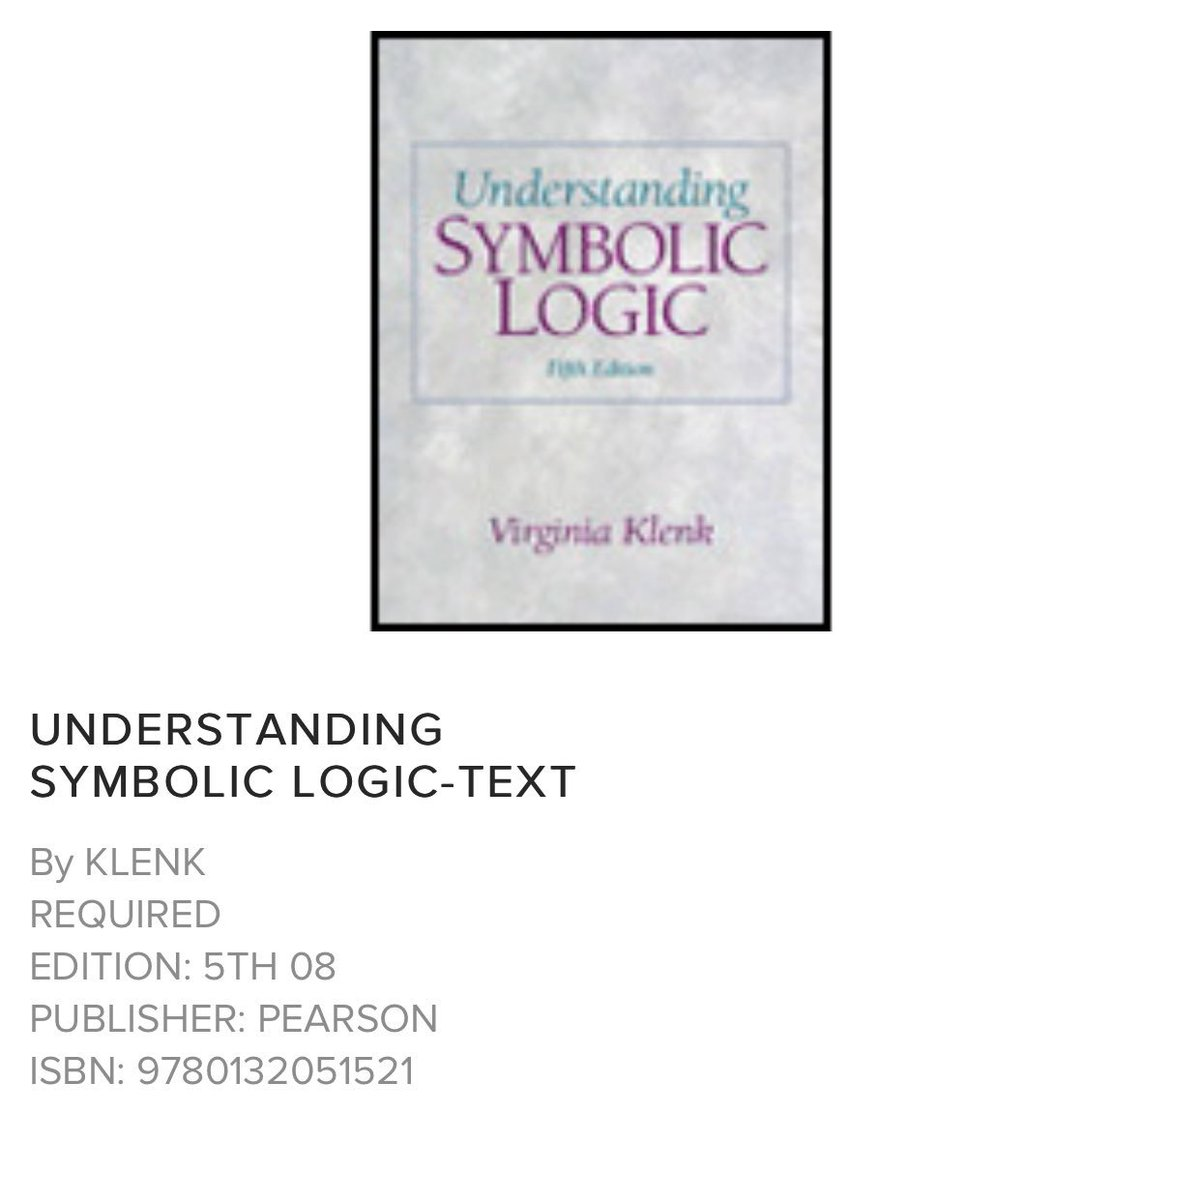 Ally On Twitter Sos Does Anyone Have This Phil 240 Book